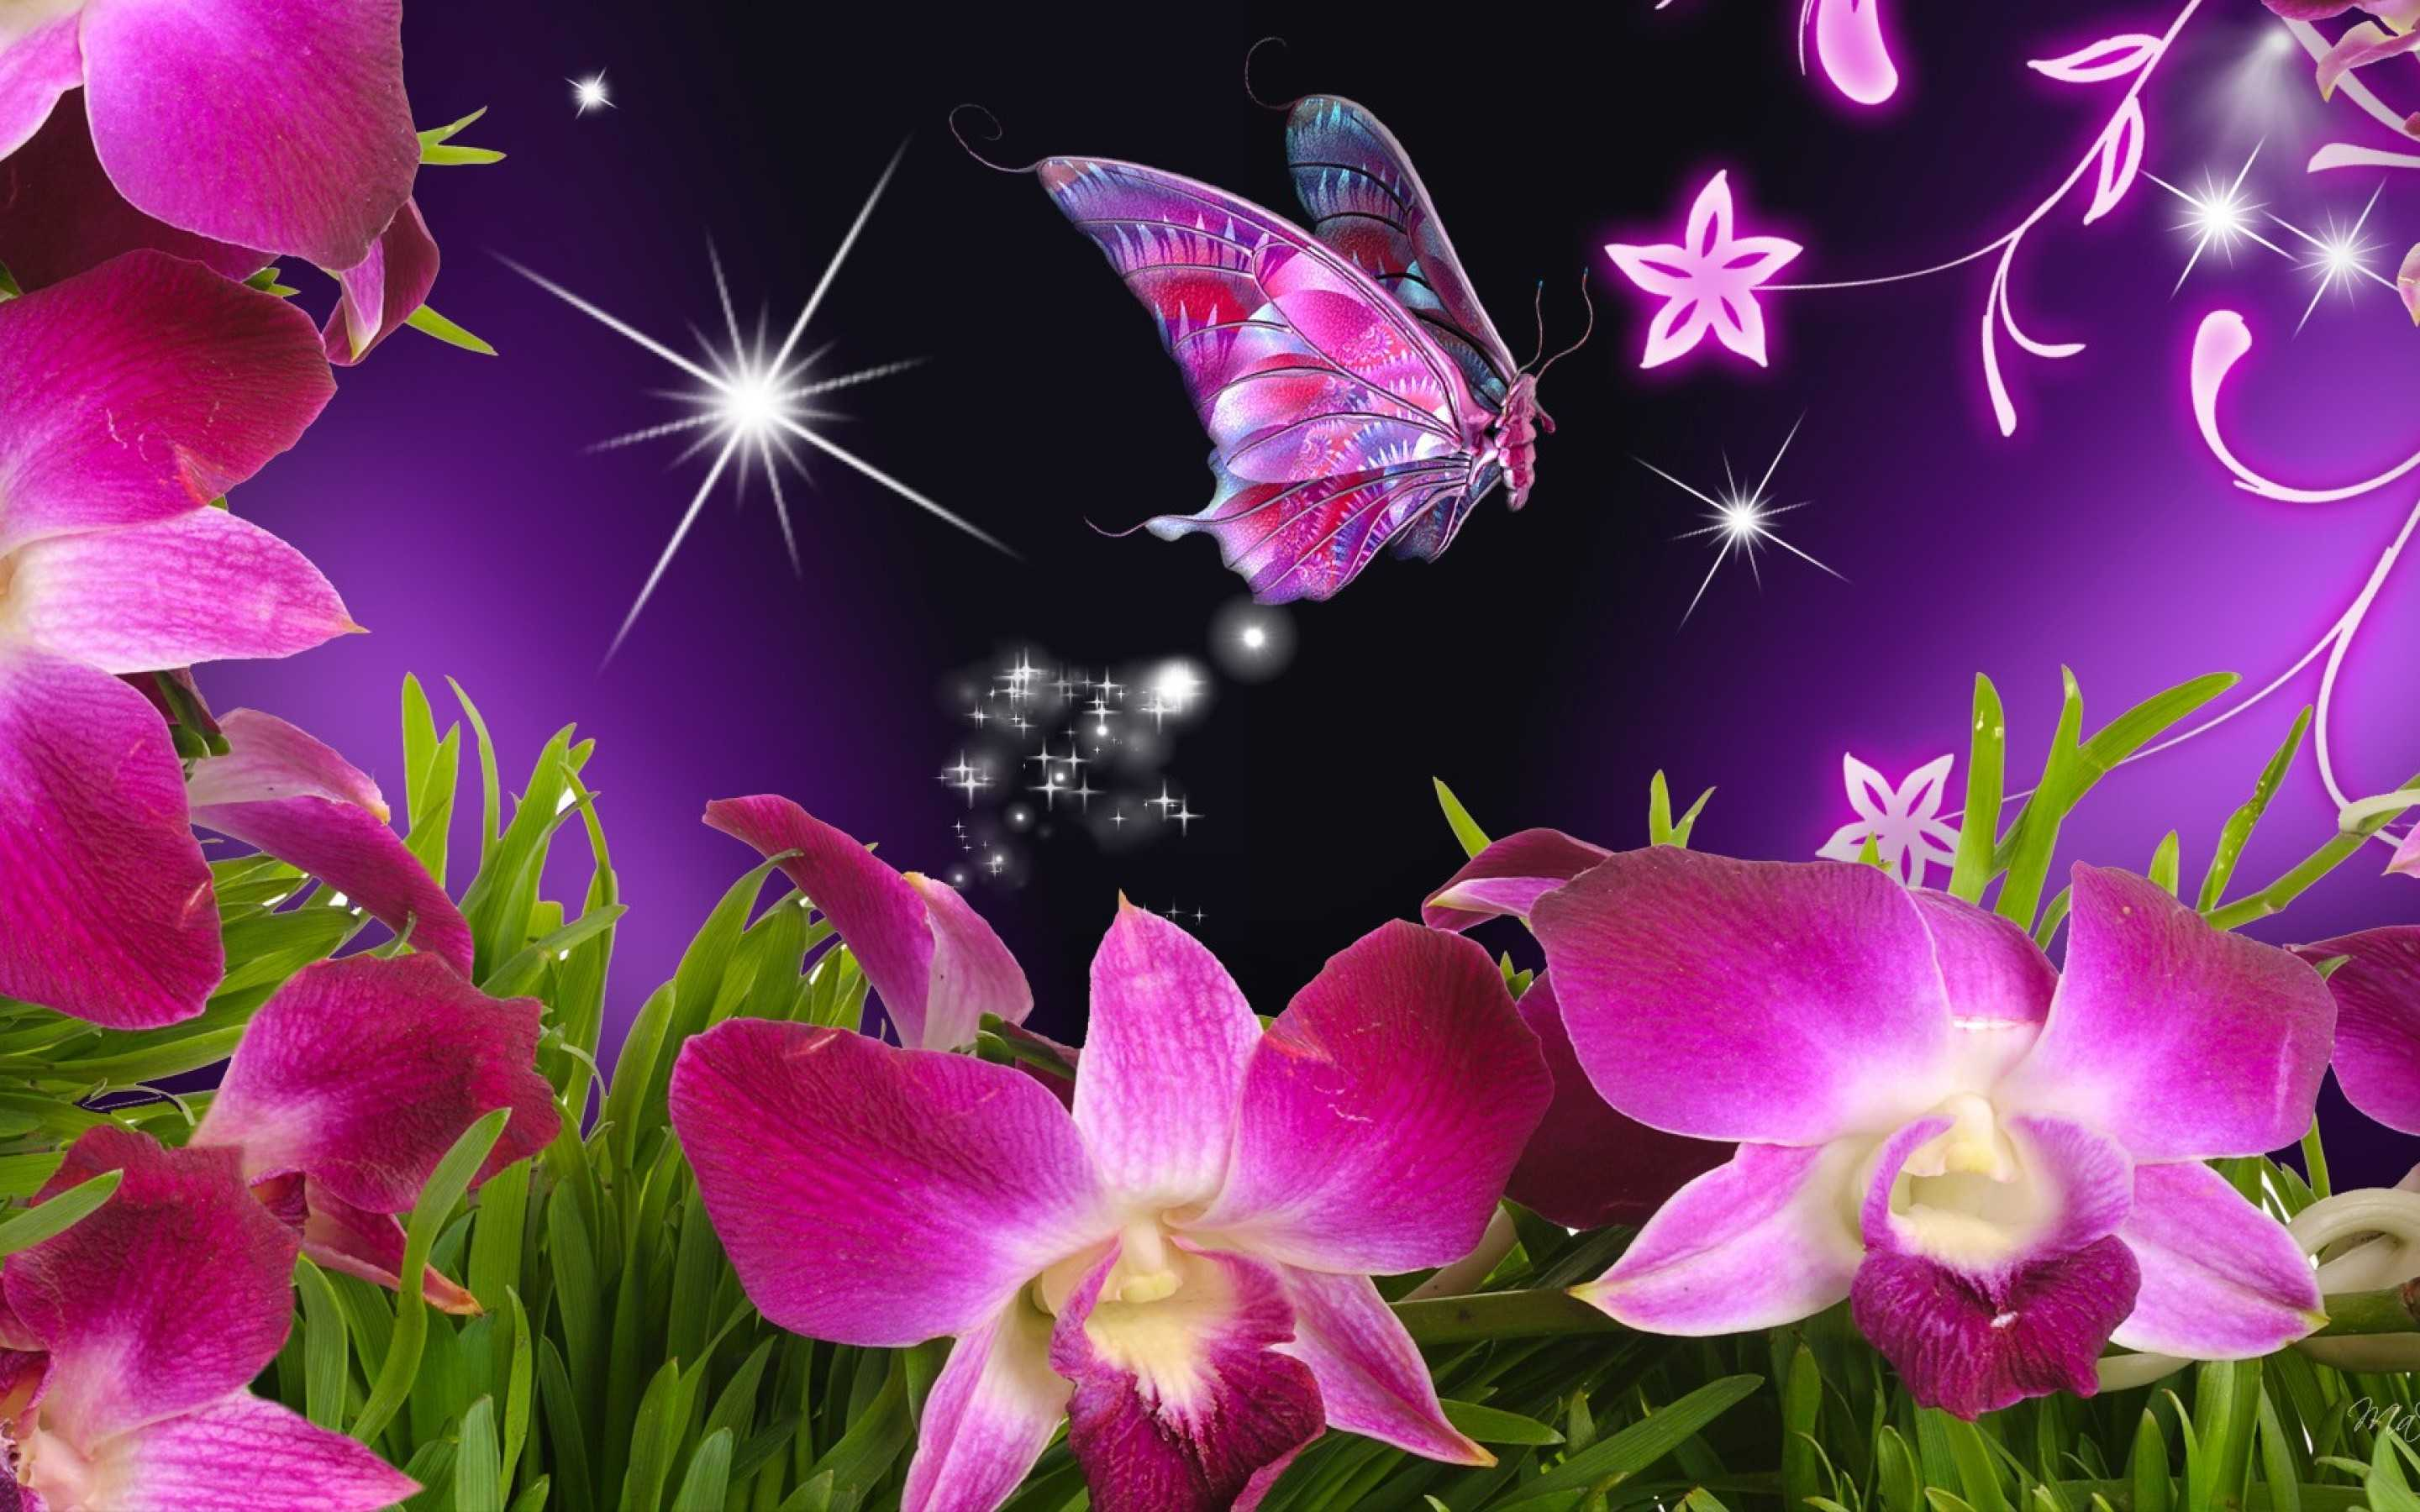 3d Flower Wallpaper For Mobile Desktop Hd Images Pc Natural With ...